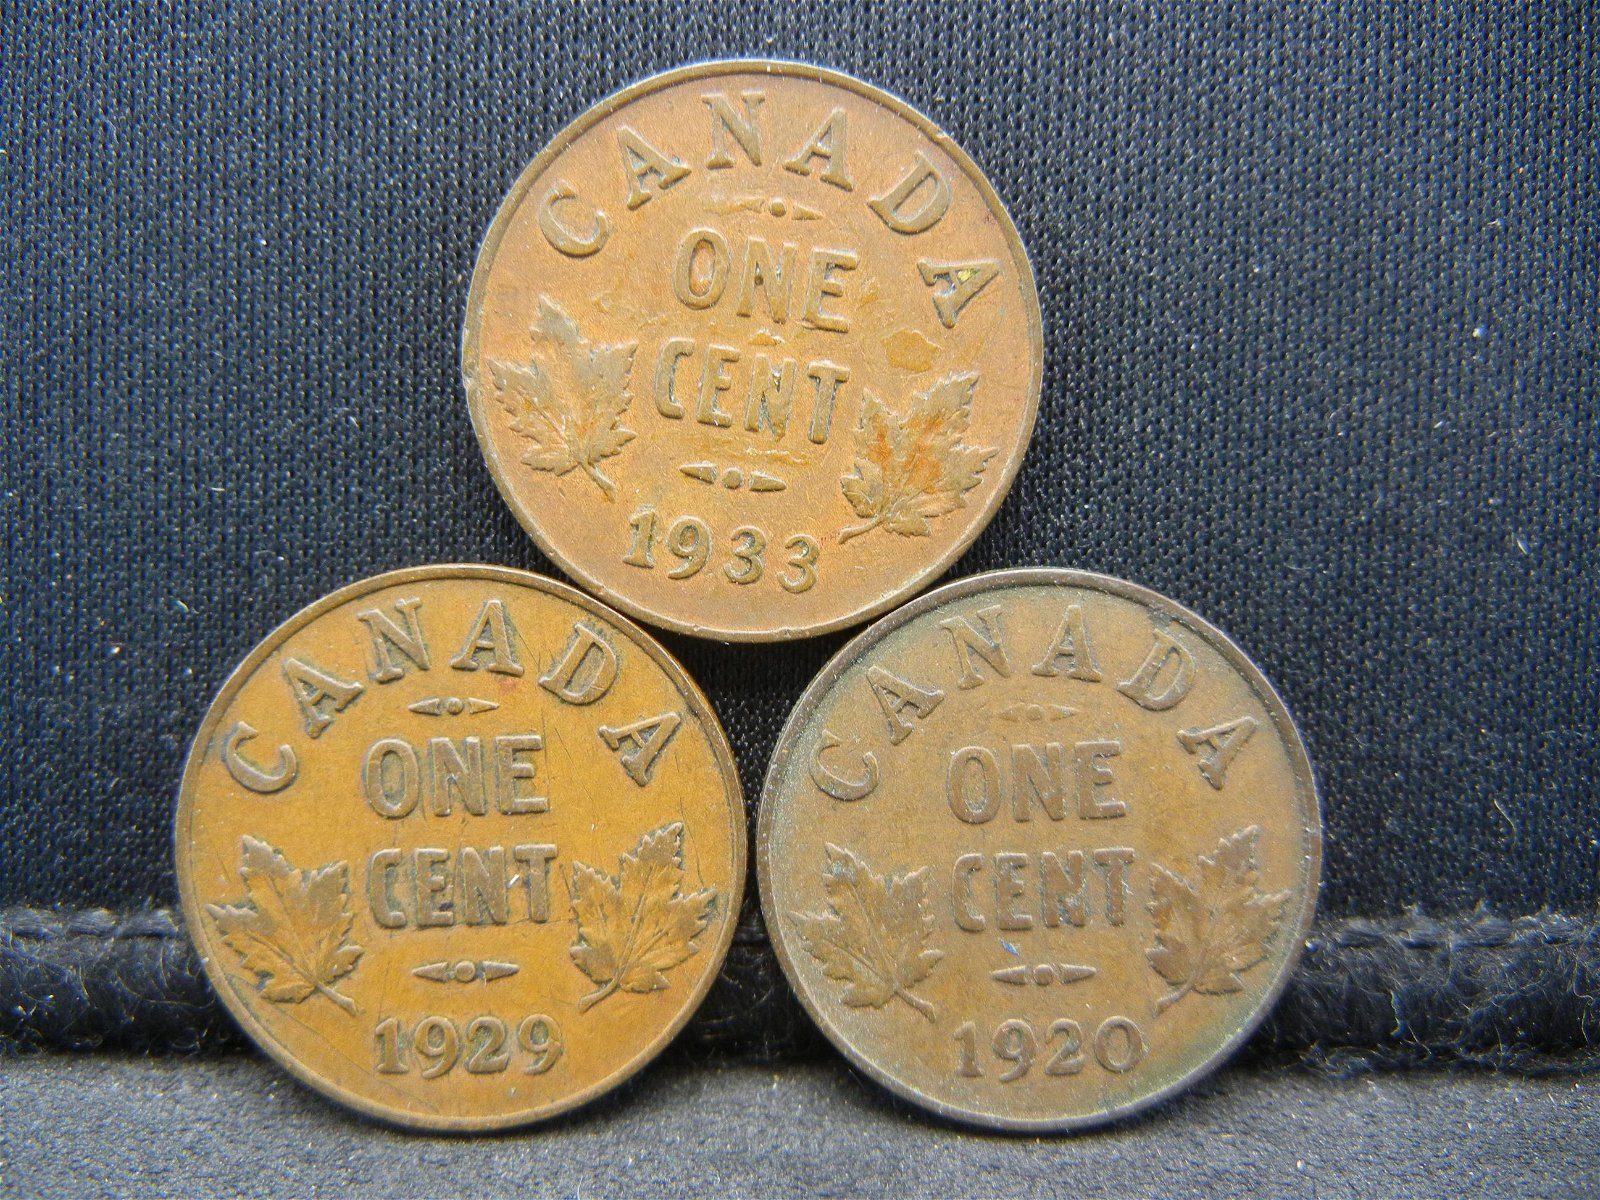 3 Canada George V Cents Dated 1920 1929 1933.